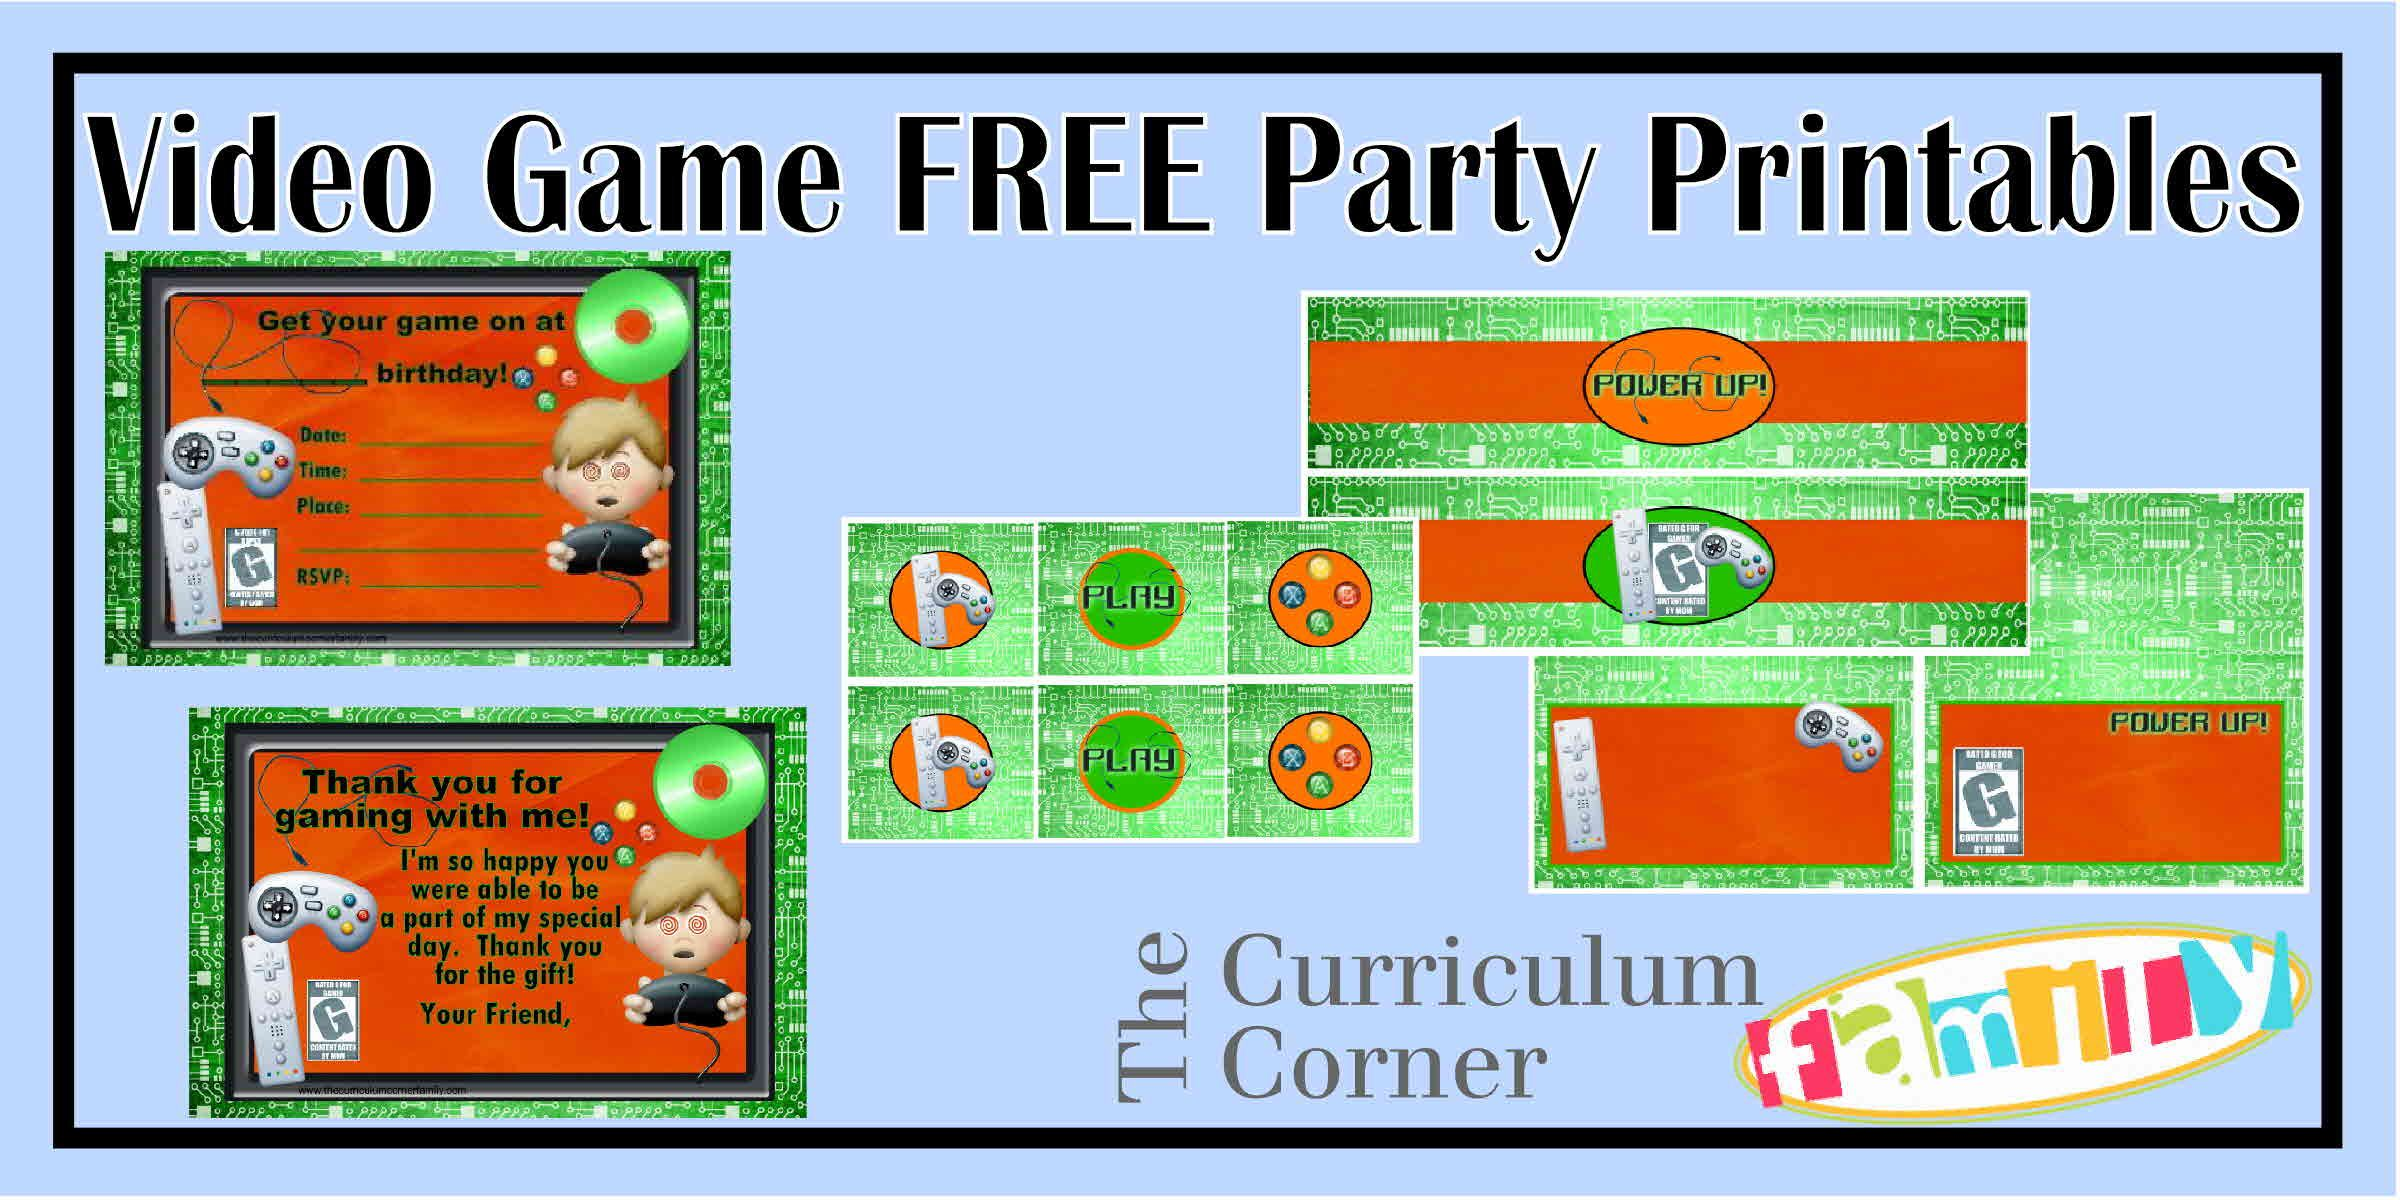 dating.com video games free printable free